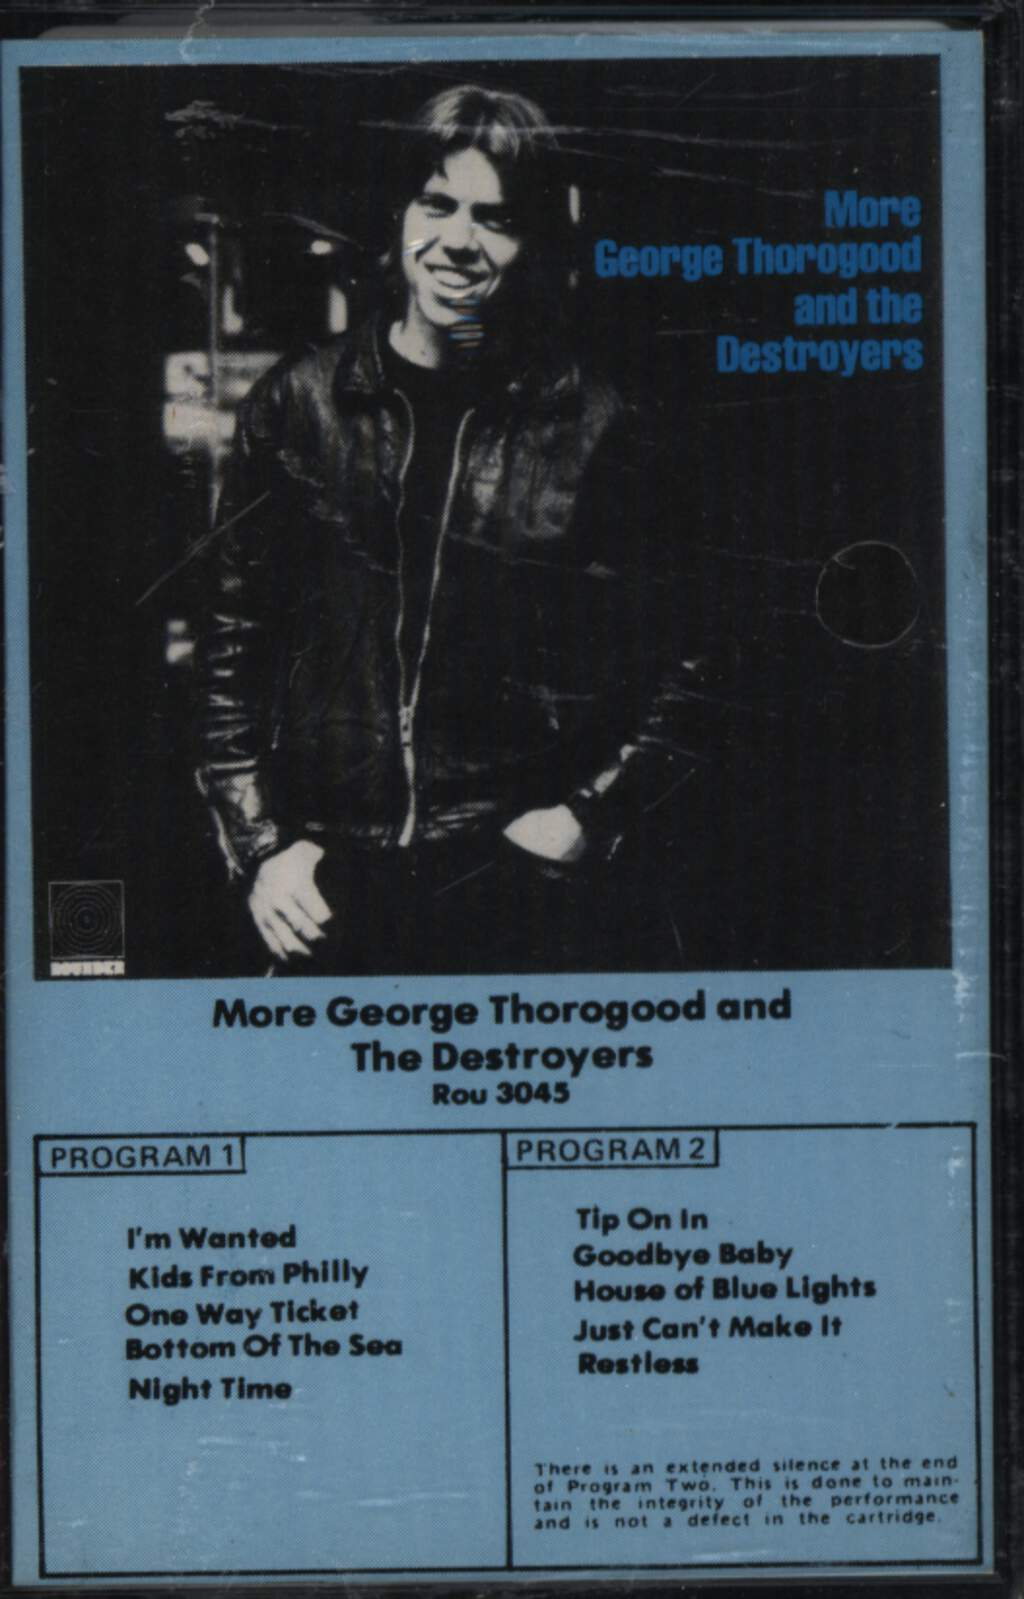 George Thorogood & The Destroyers: More George Thorogood And The Destroyers, Compact Cassette